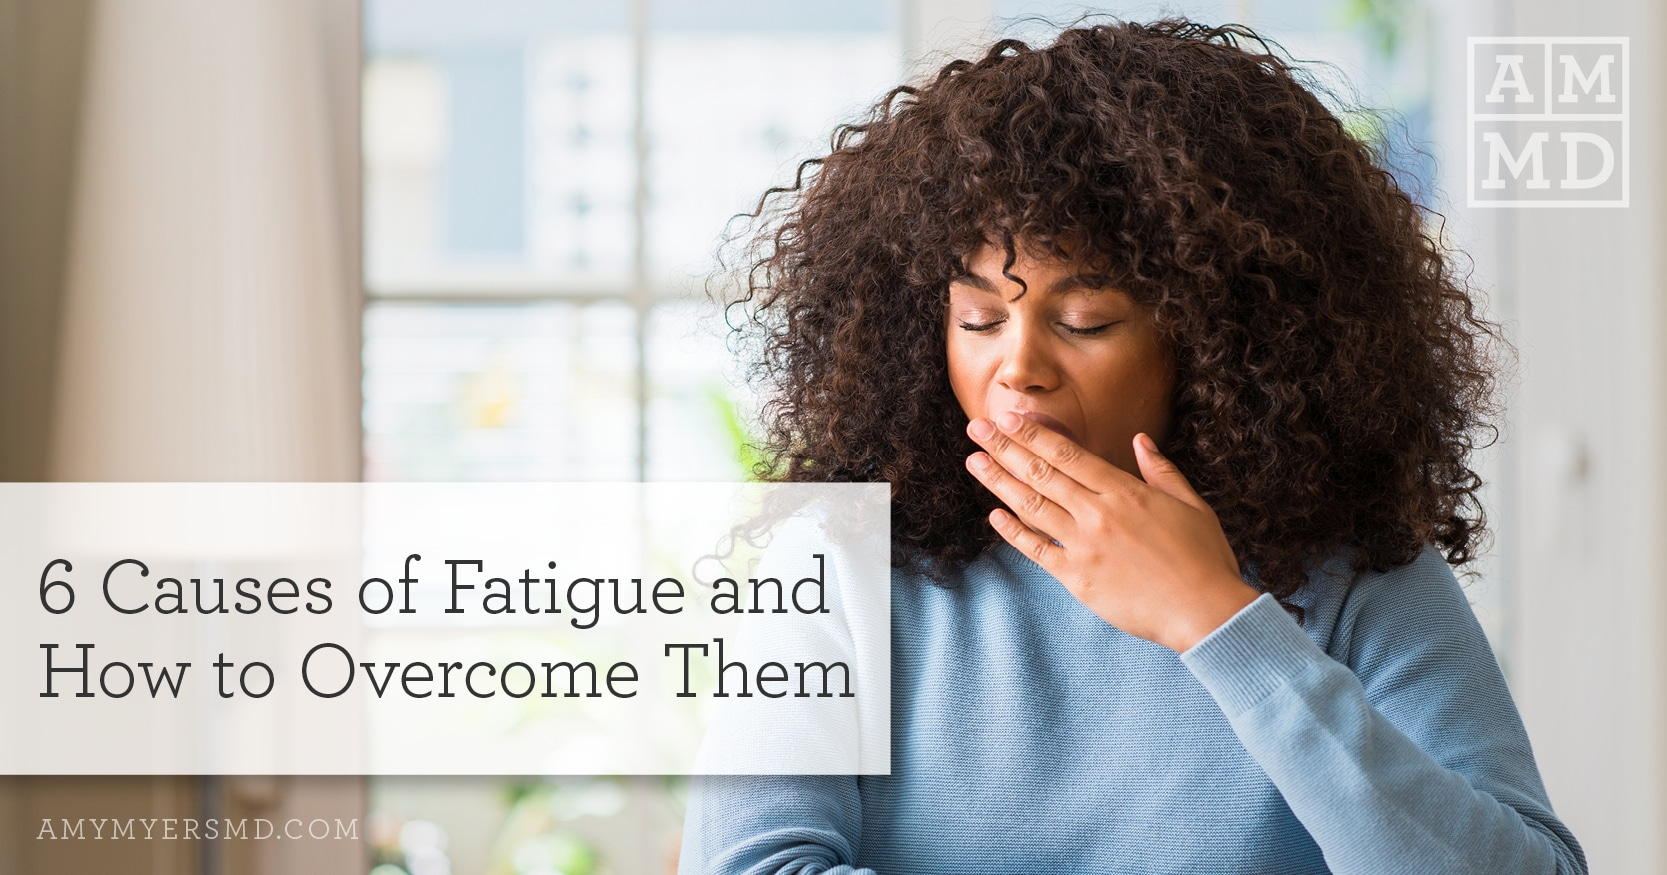 6 Causes of Fatigue and How to Overcome Them - A Woman Yawning - Featured Image - Amy Myers MD